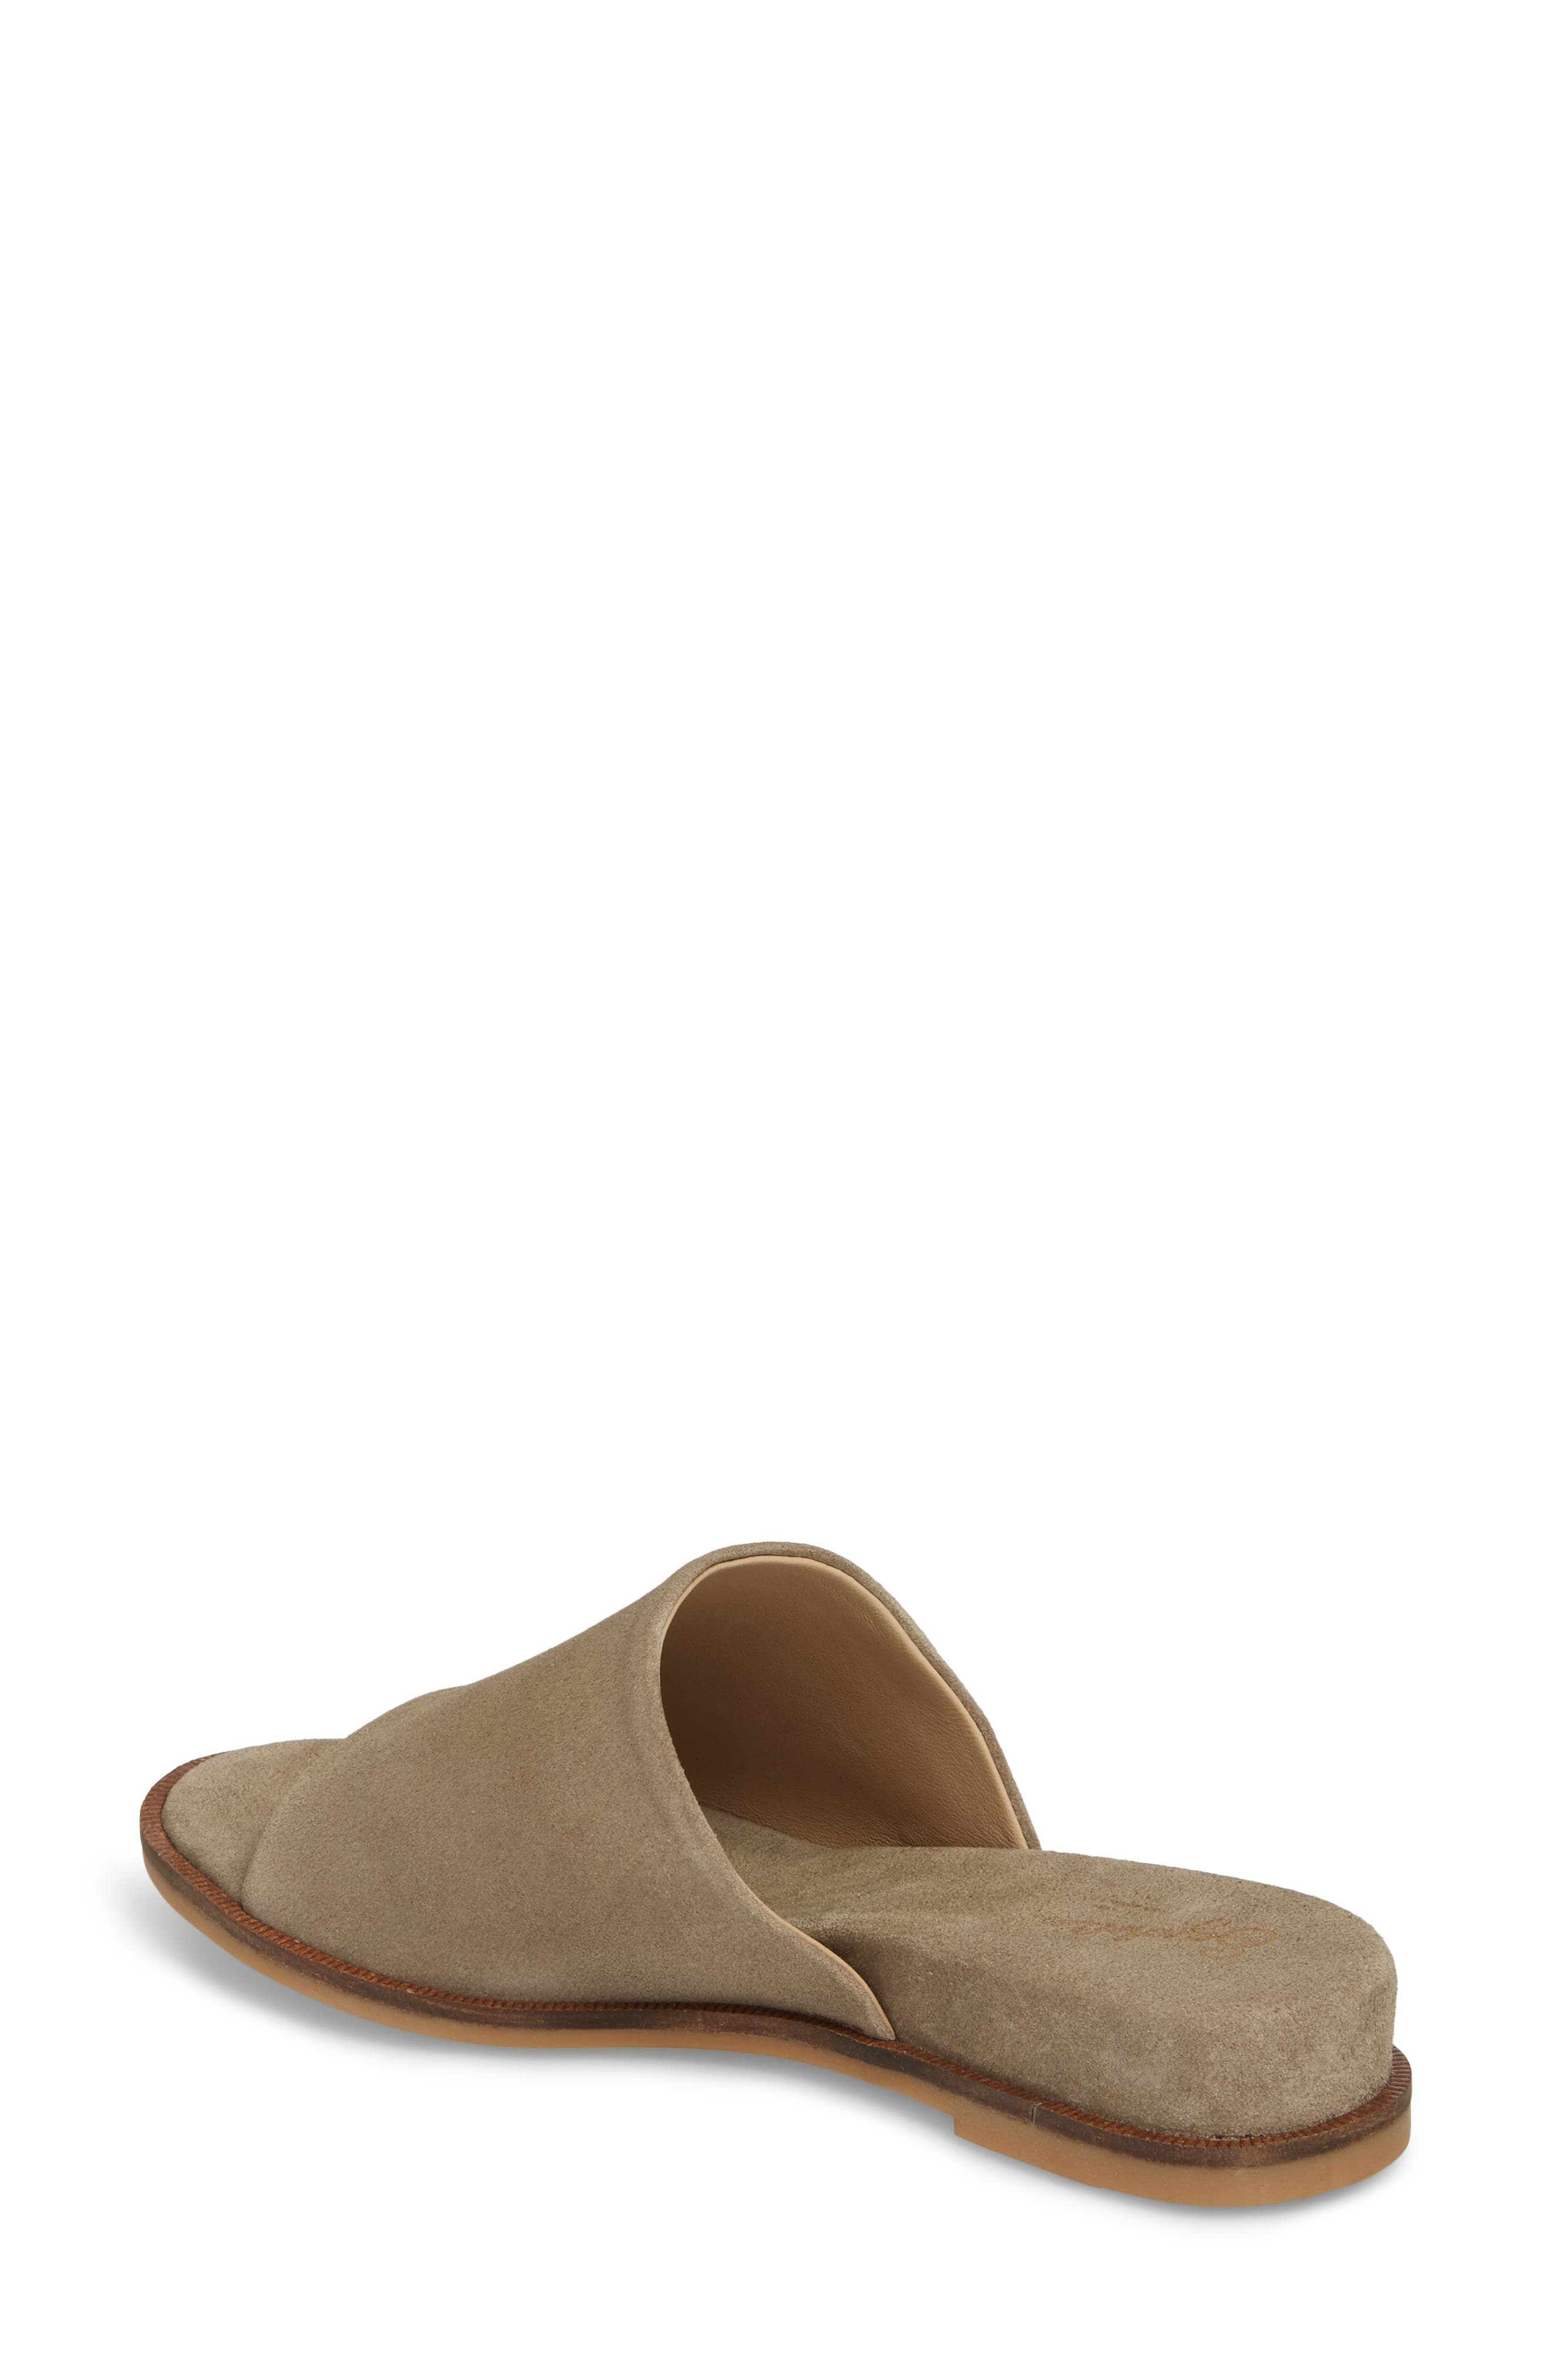 Relaxing Wedge Slide Sandal,                             Alternate thumbnail 2, color,                             TAUPE LEATHER